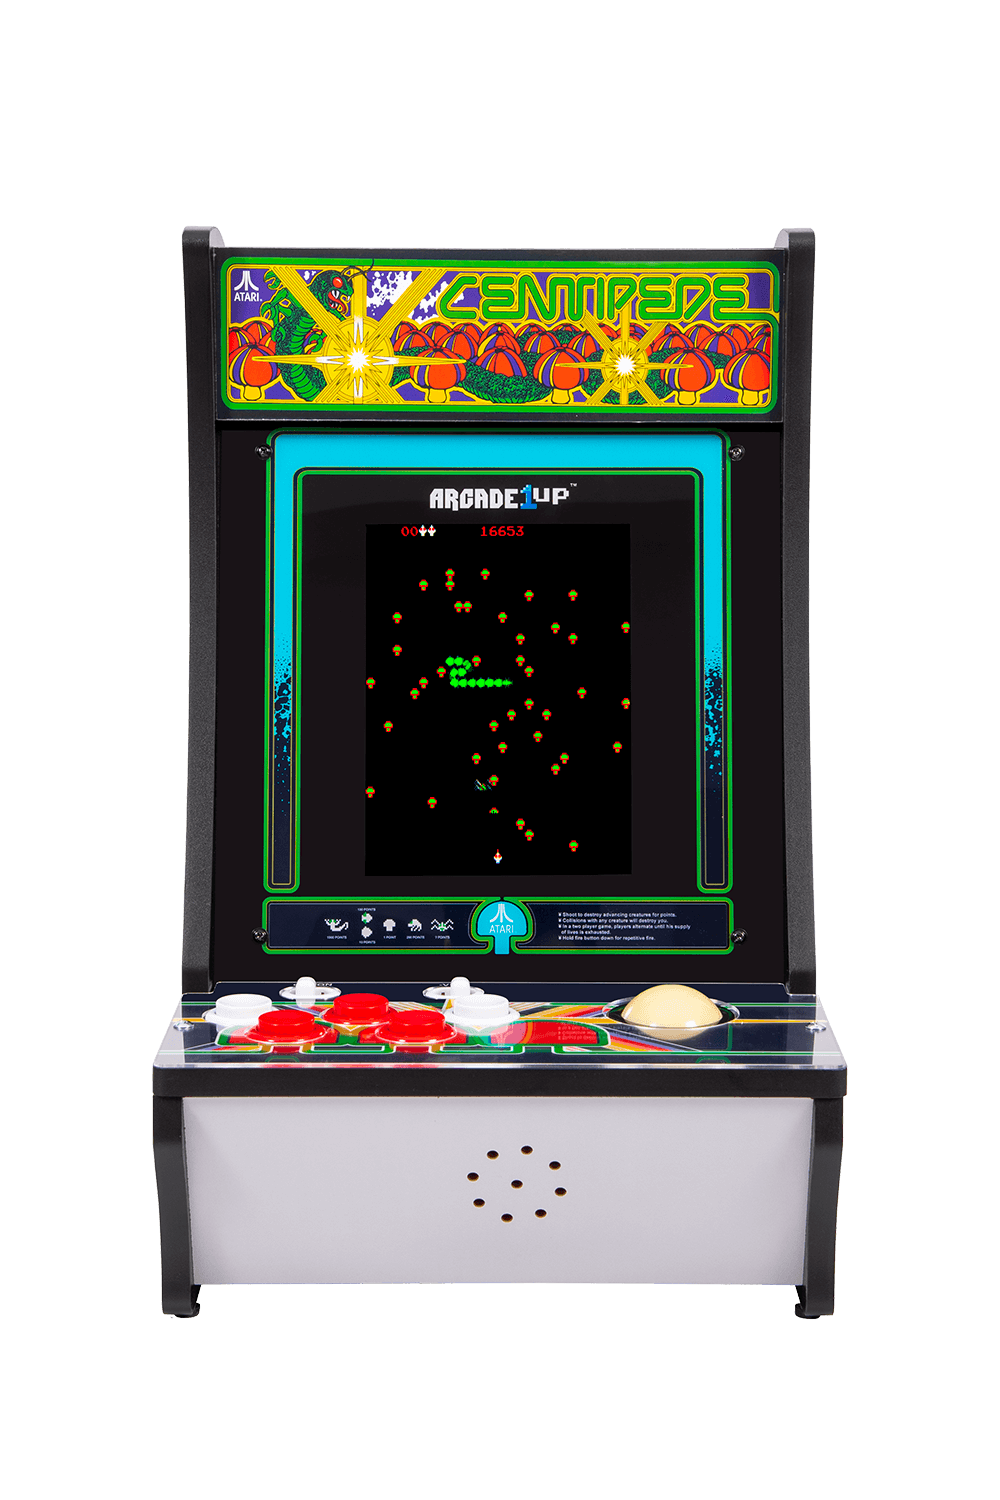 Centipede Counter Cade Arcade1up